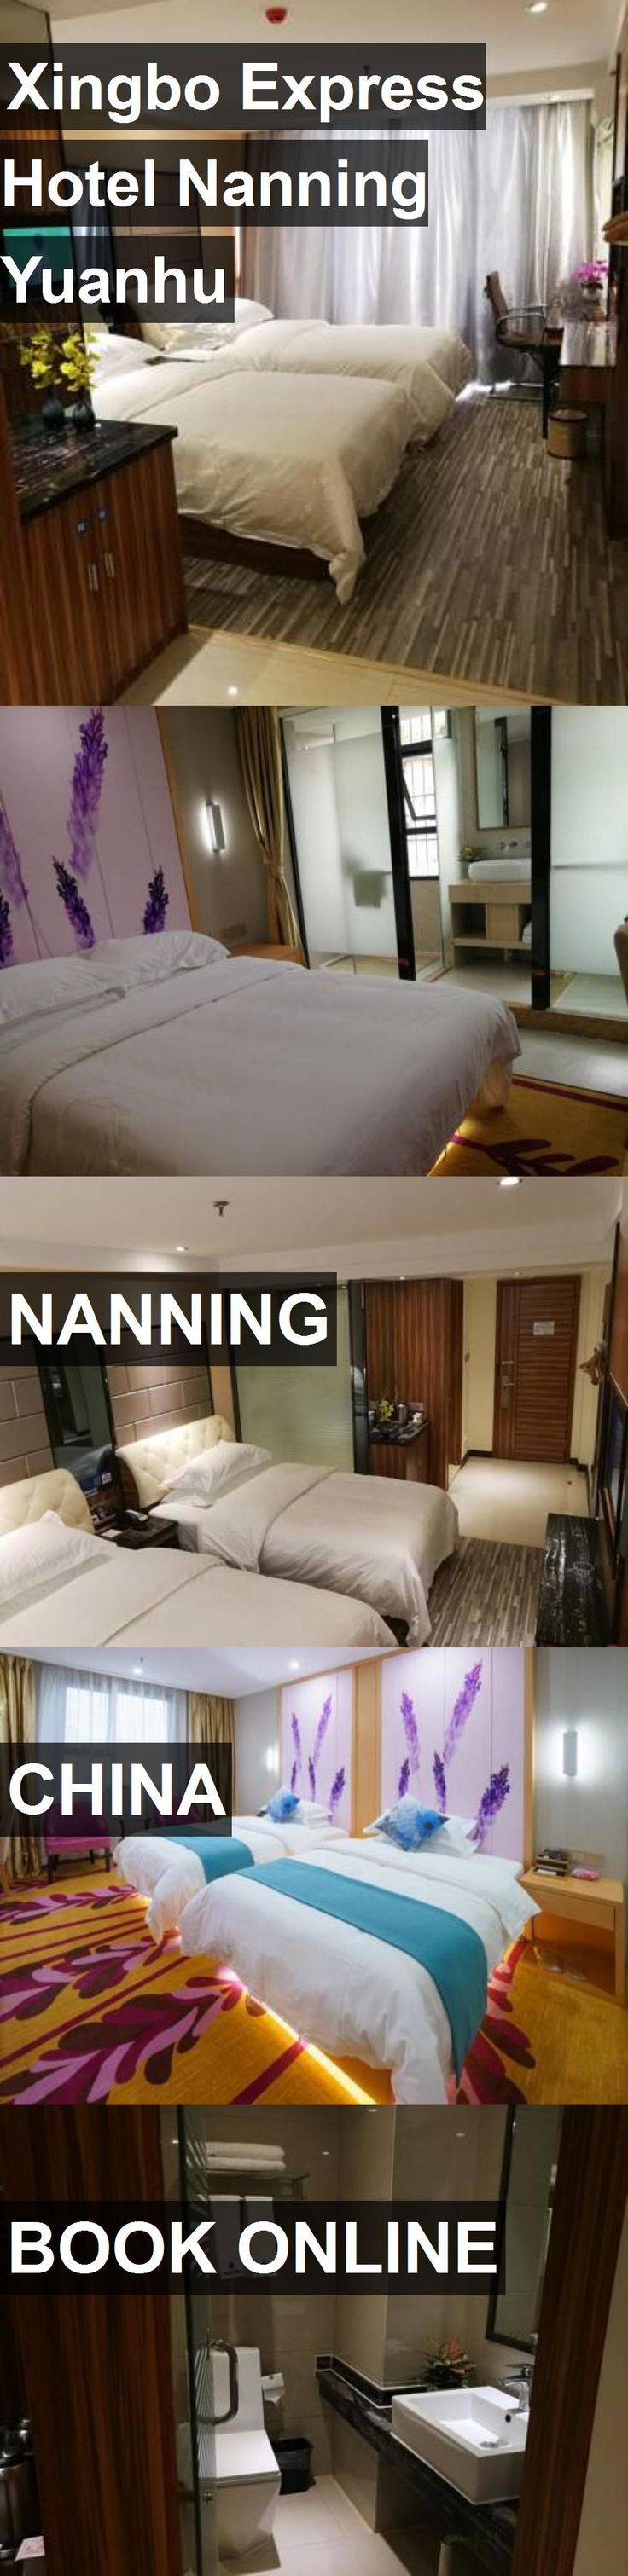 Xingbo Express Hotel Nanning Yuanhu in Nanning, China. For more information, photos, reviews and best prices please follow the link. #China #Nanning #travel #vacation #hotel